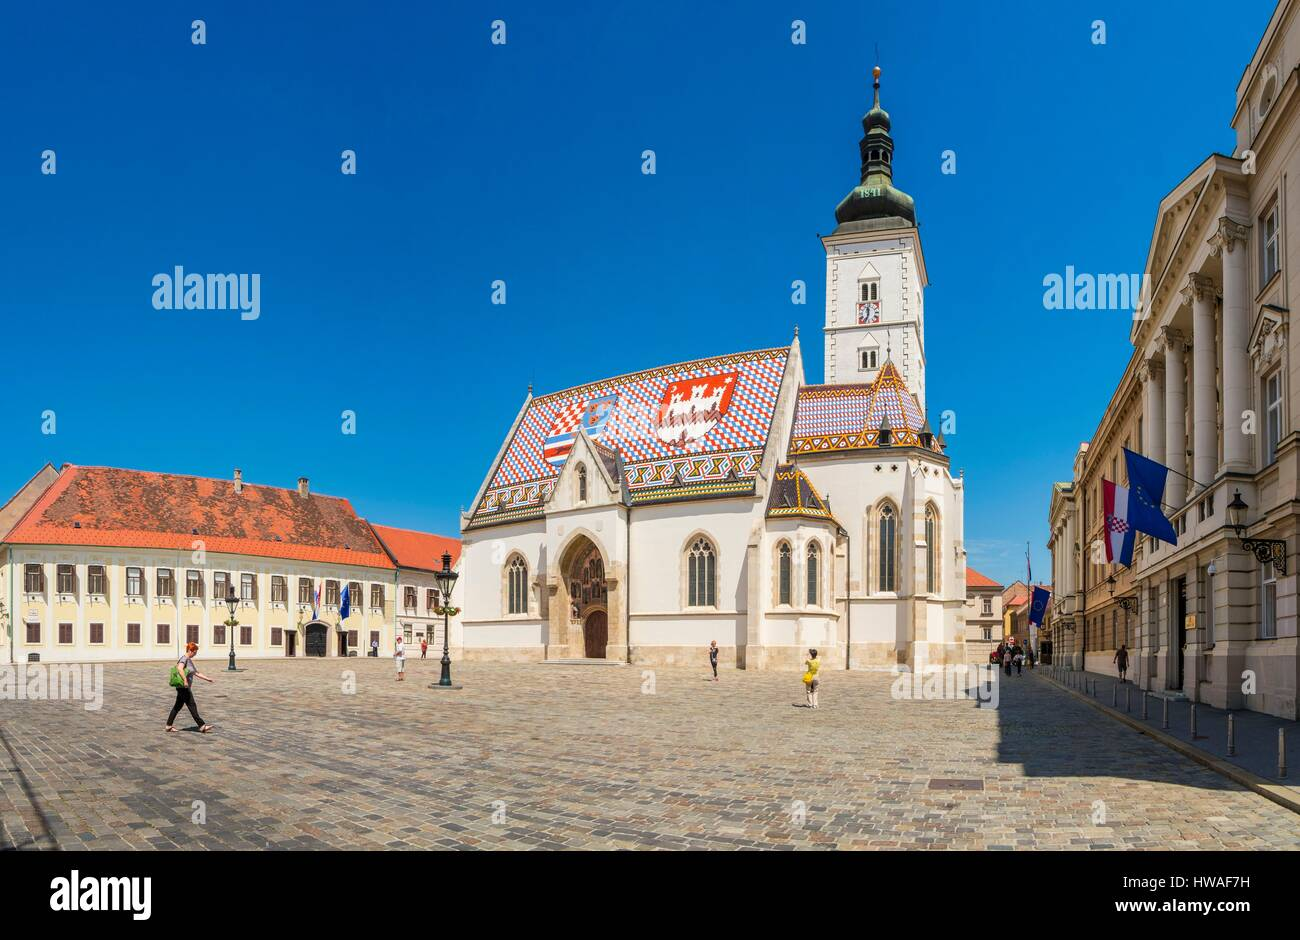 Croatia, Zagreb, old town district Gradec, upper town Place Marka, Church of St. Marc from the thirteenth-fourteenth - Stock Image